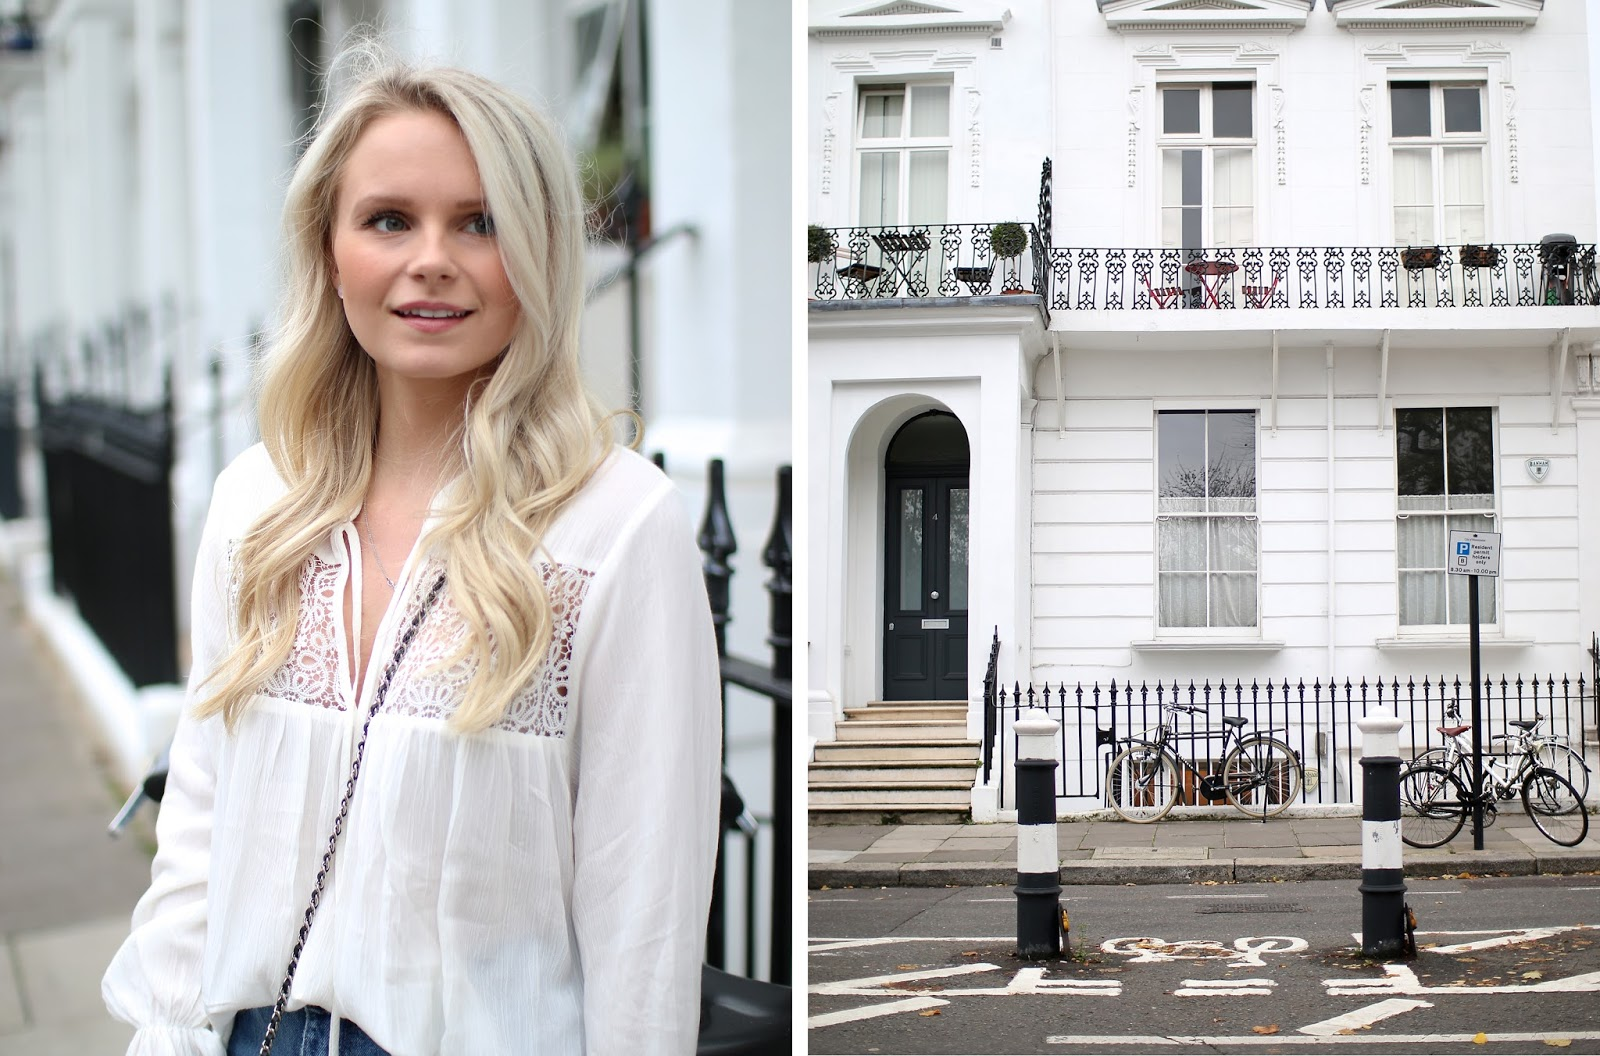 scenic shot of notting hill in london, white buildings and beautiful architecture in the city